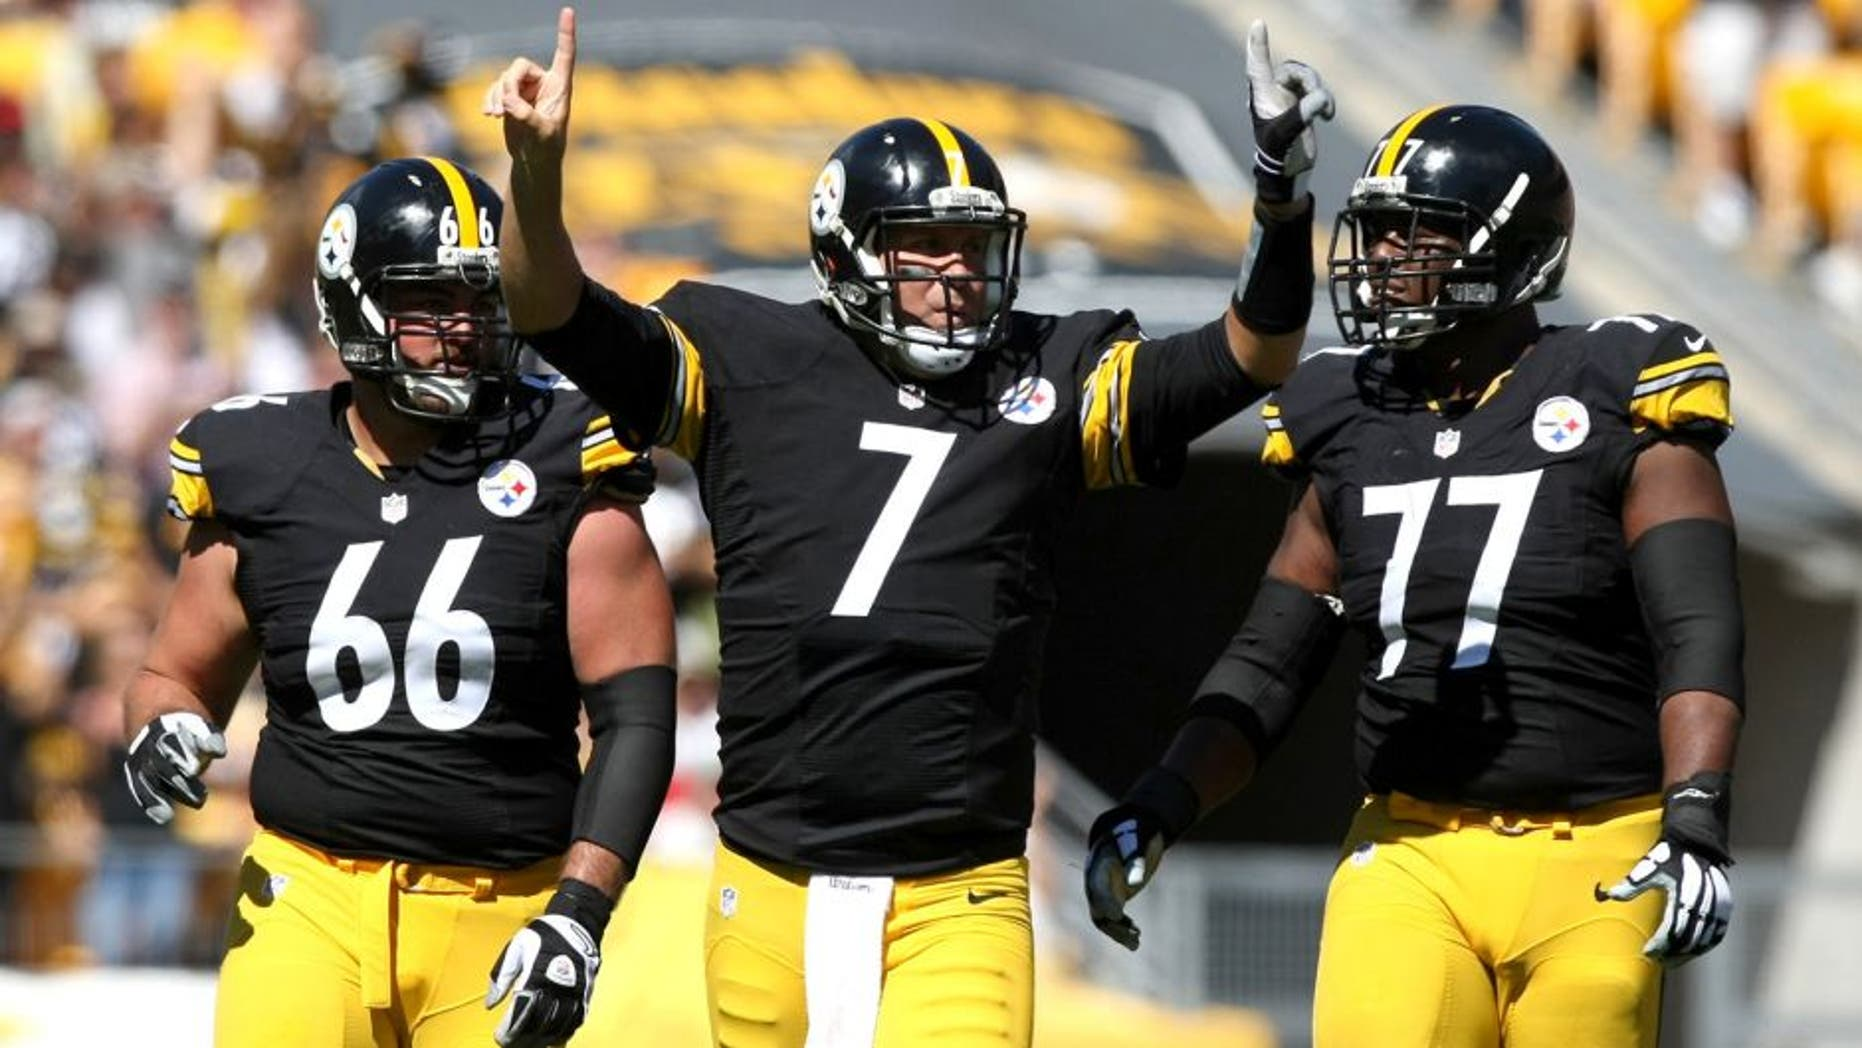 Sep 20, 2015; Pittsburgh, PA, USA; Pittsburgh Steelers quarterback Ben Roethlisberger (7) celebrates a touchdown pass with guard David DeCastro (66) and offensive tackle Marcus Gilbert (77) against the San Francisco 49ers during the first half at Heinz Field. Mandatory Credit: Jason Bridge-USA TODAY Sports